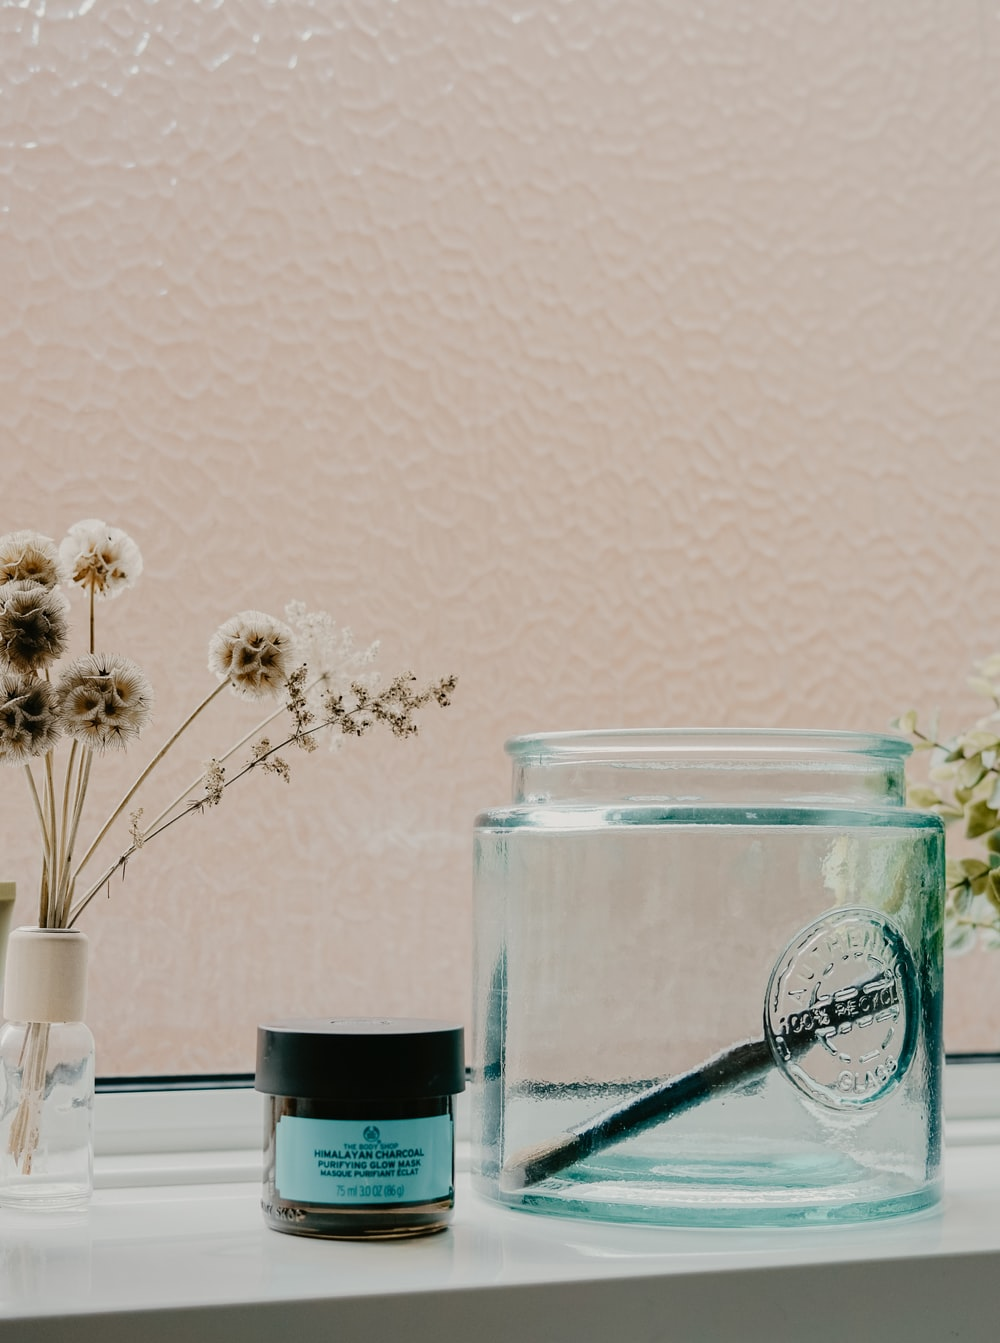 white and black labeled jar beside glass container